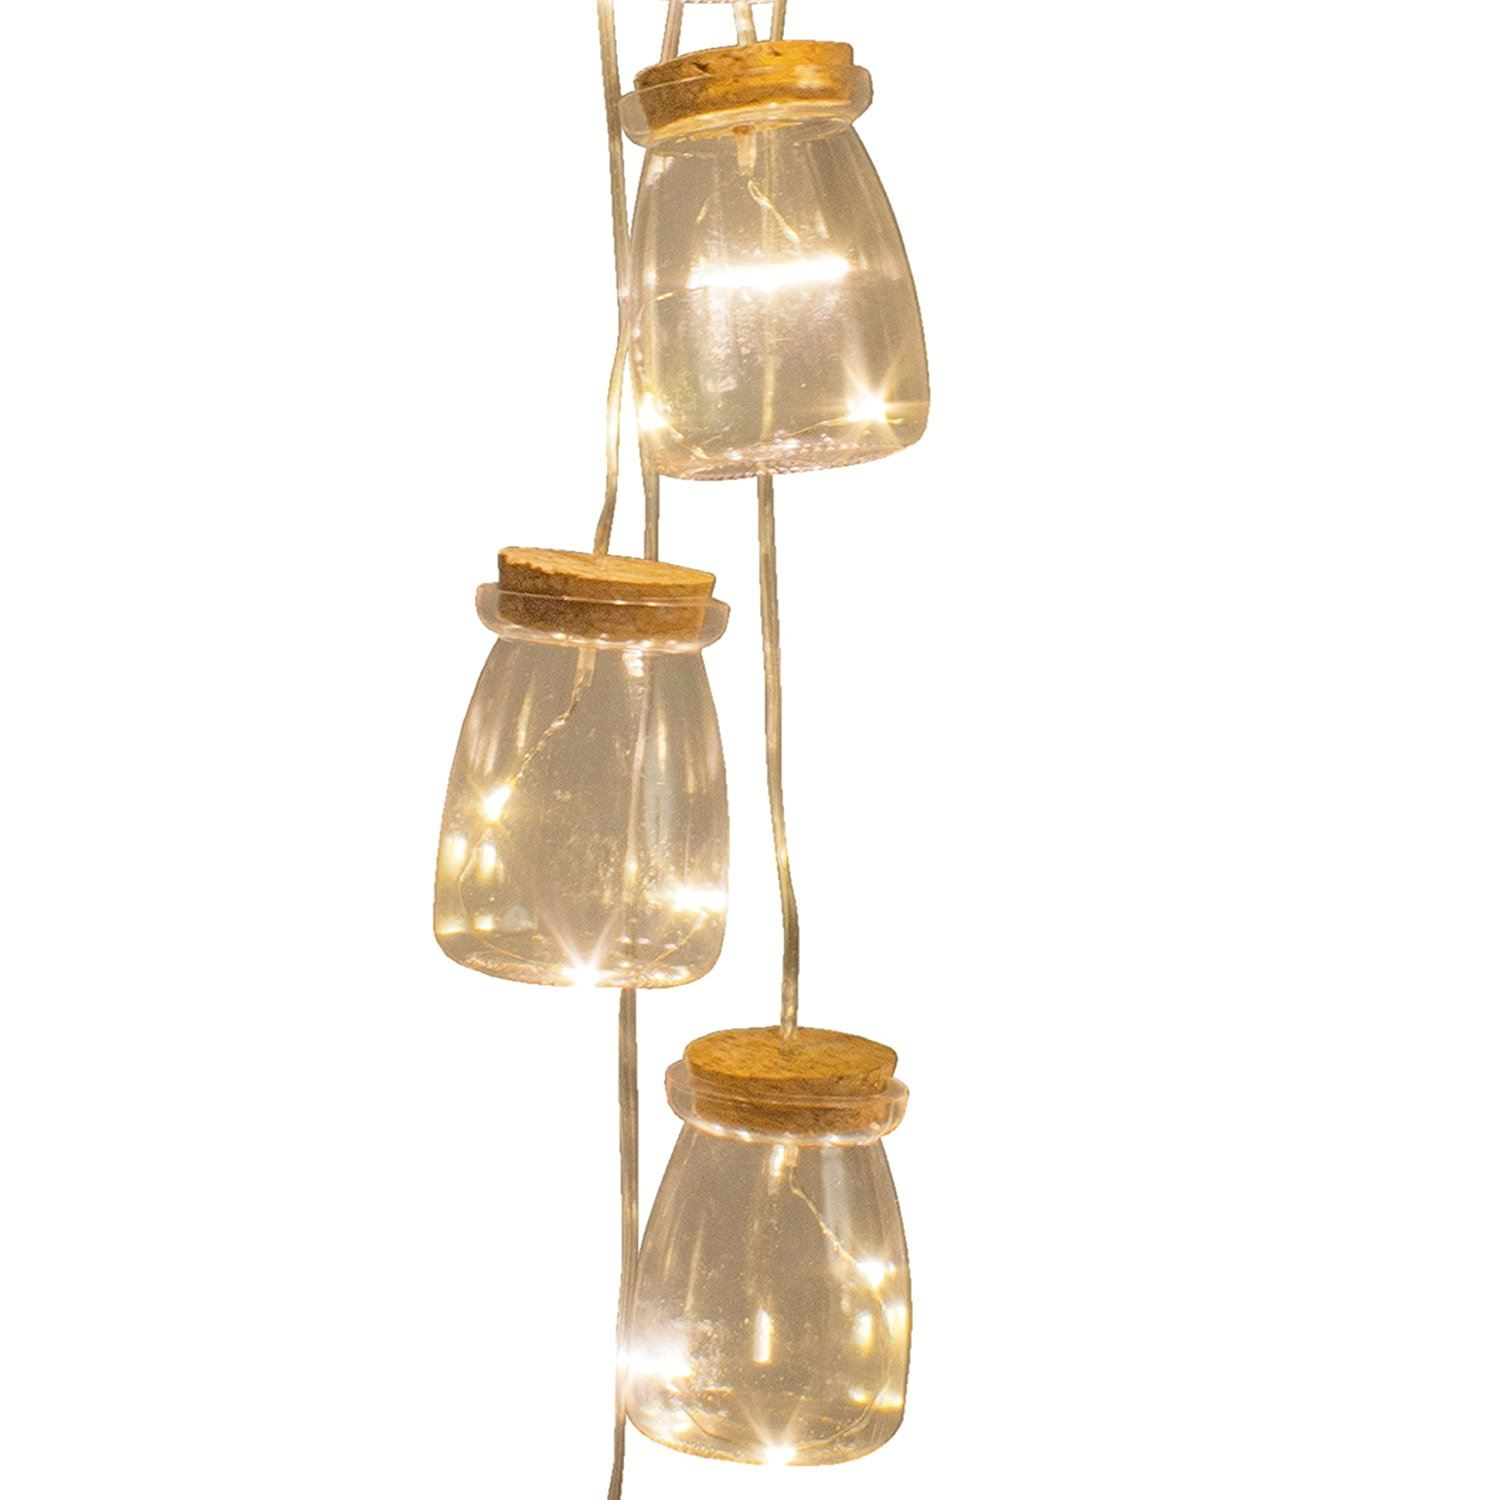 Set Of 5 Vintage Mini Bottle Jar Indoor String Lights 15 Warm White LED Bulbs eBay